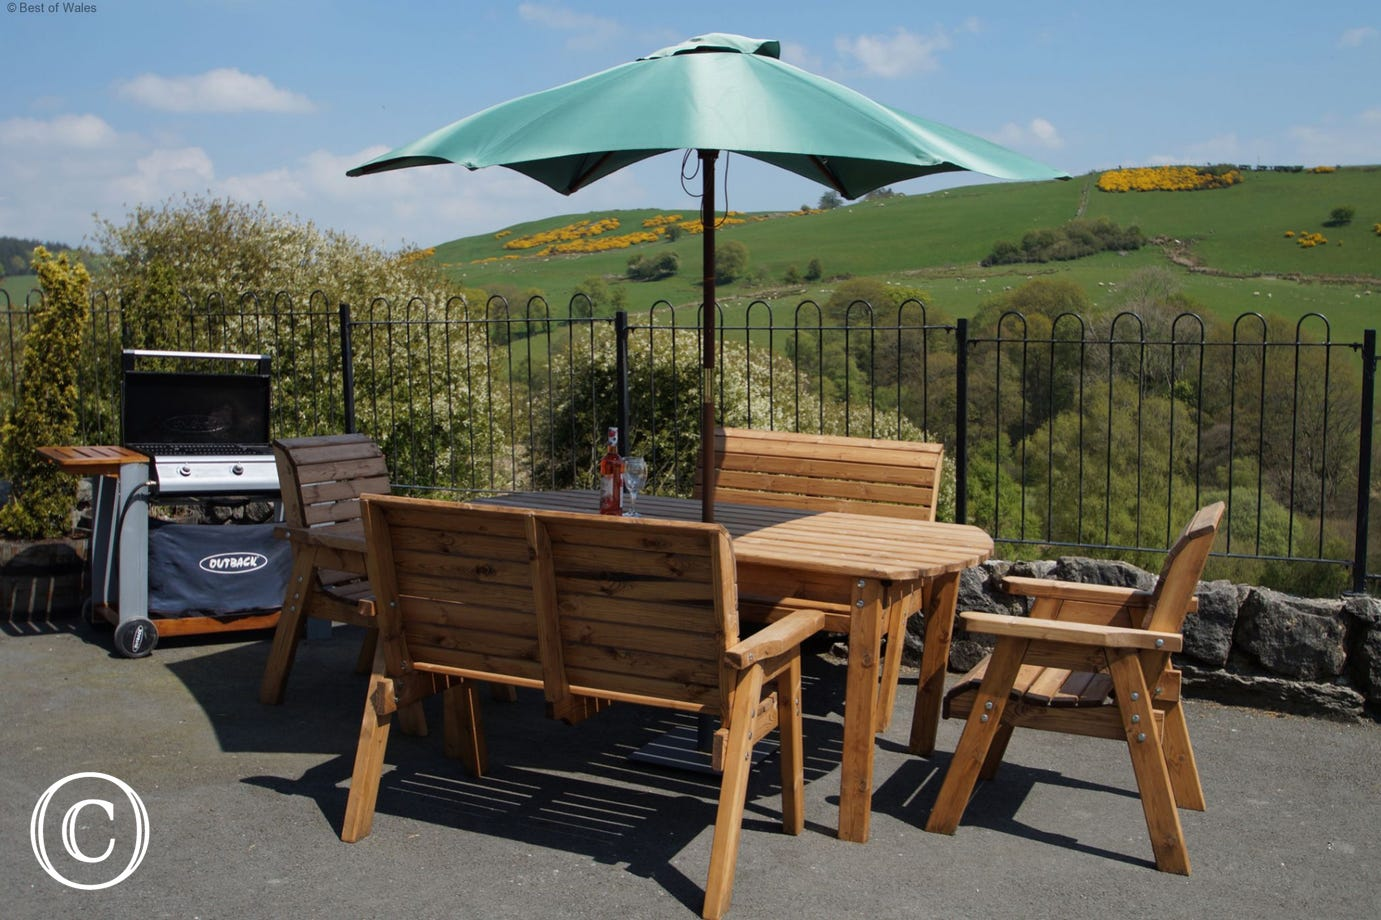 Enclosed patio area includes BBQ, garden table, chairs and great views